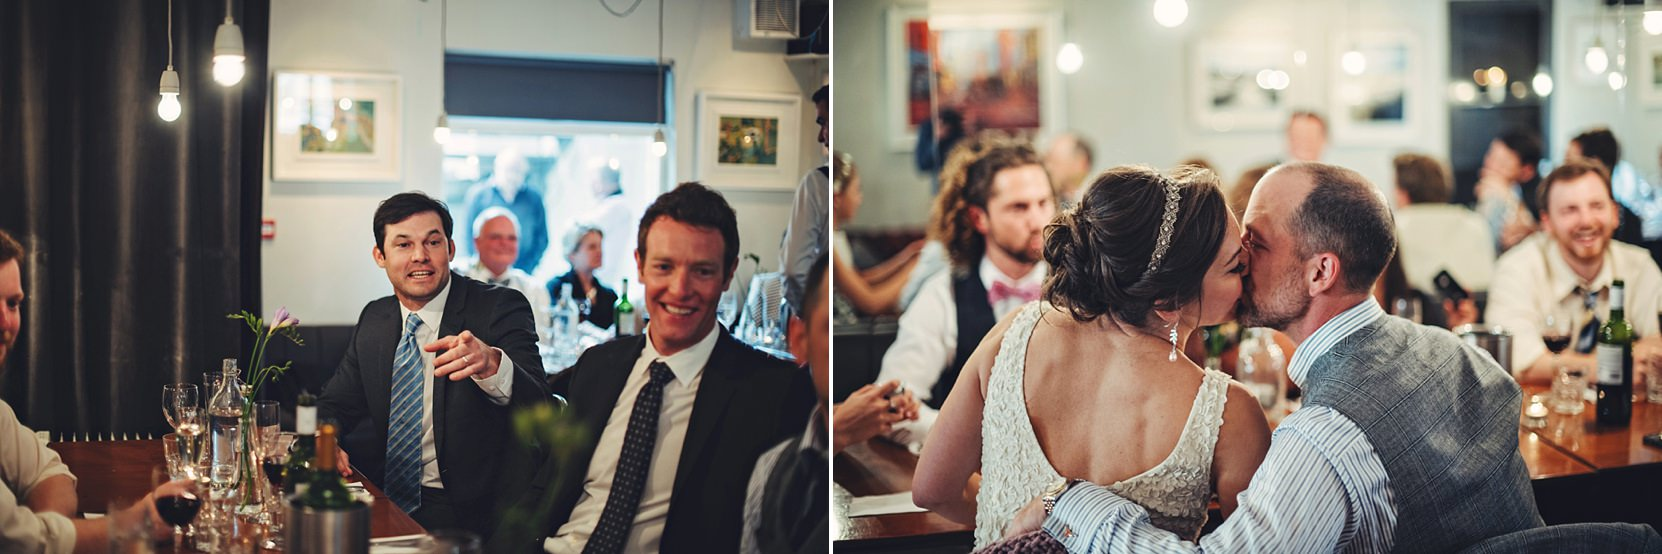 Irish-Destination-Wedding-Photographer_0147